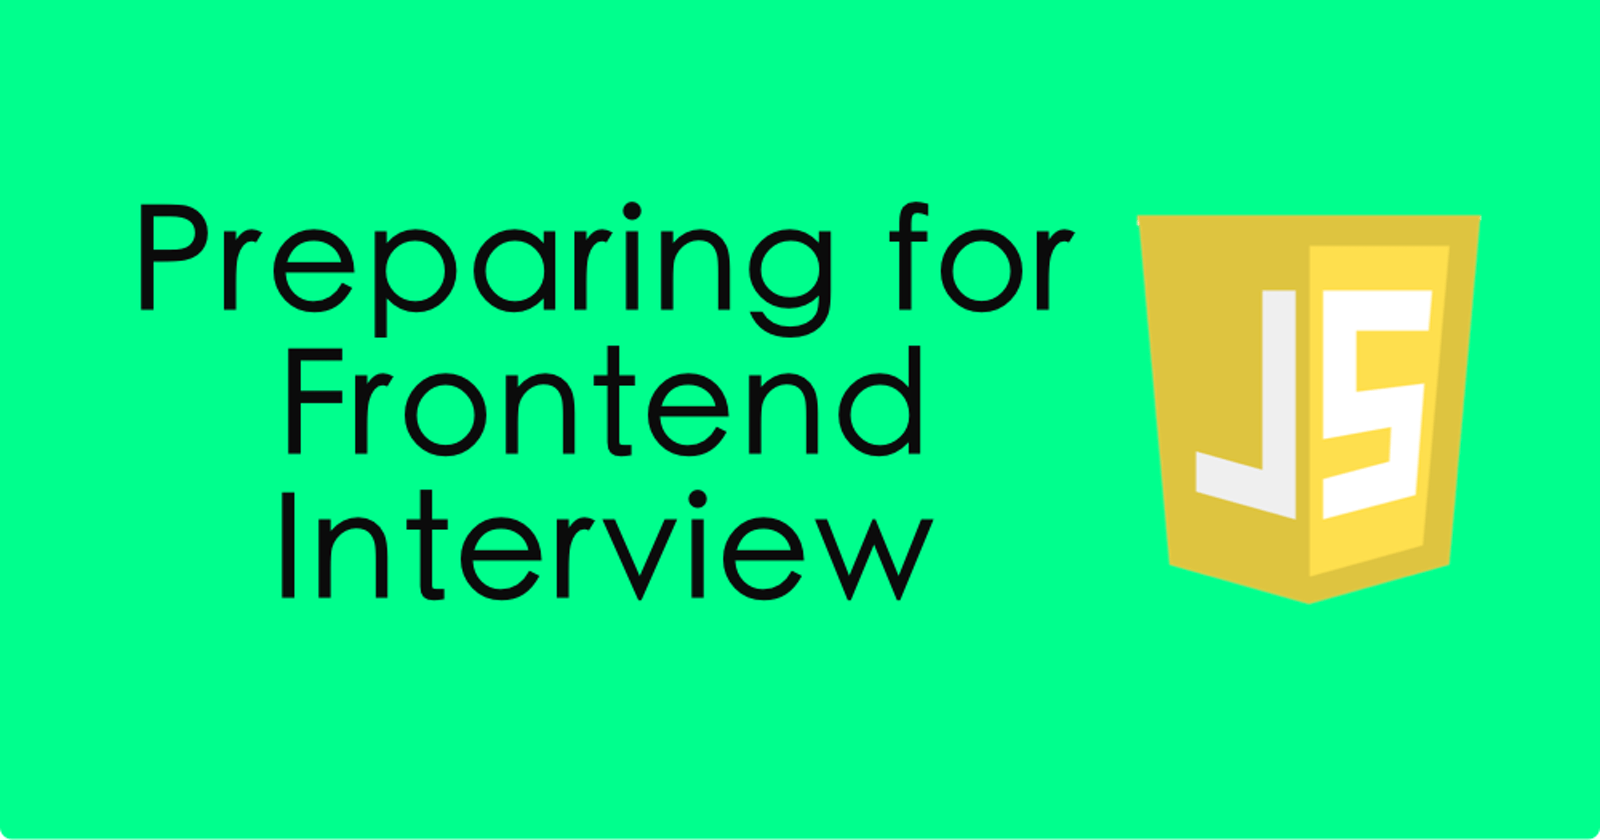 Preparing for Frontend Interview